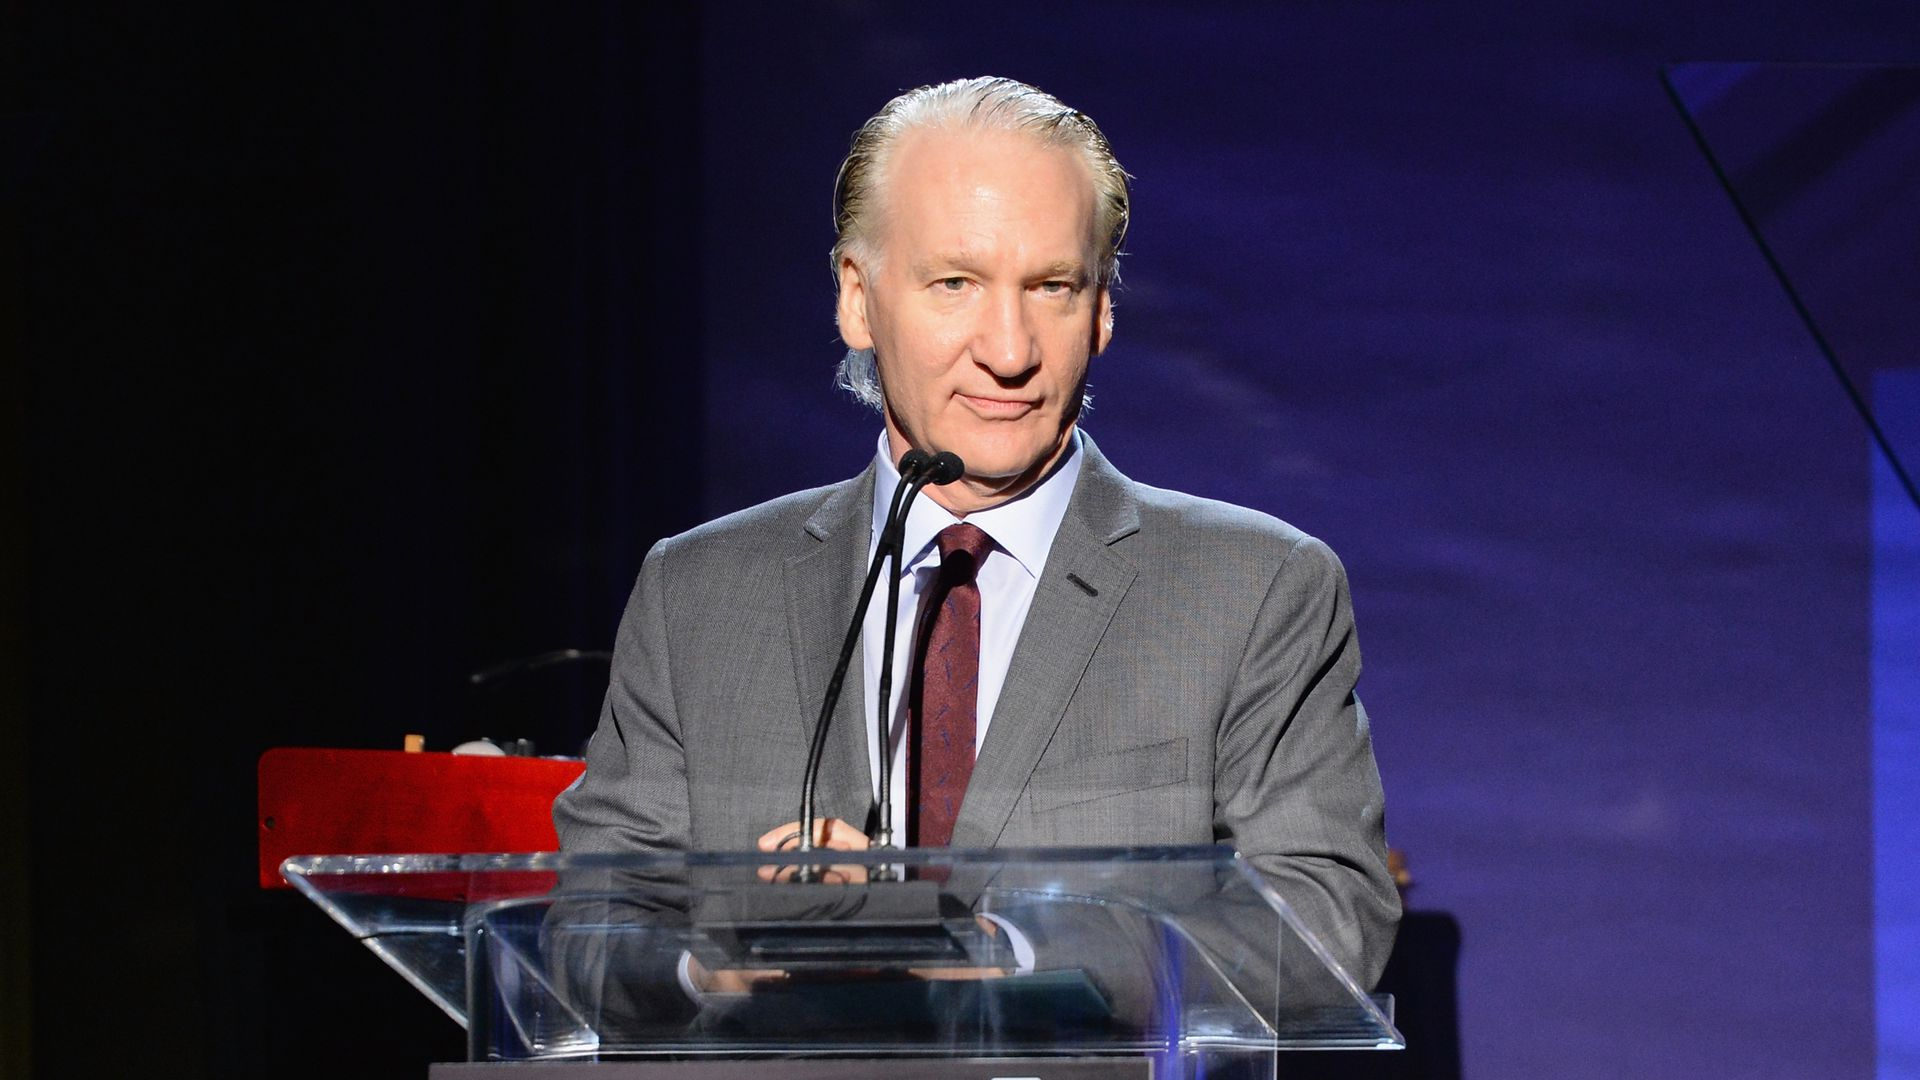 Sandmann's lawyers says they're looking closely at HBO for the conduct of Bill Maher.